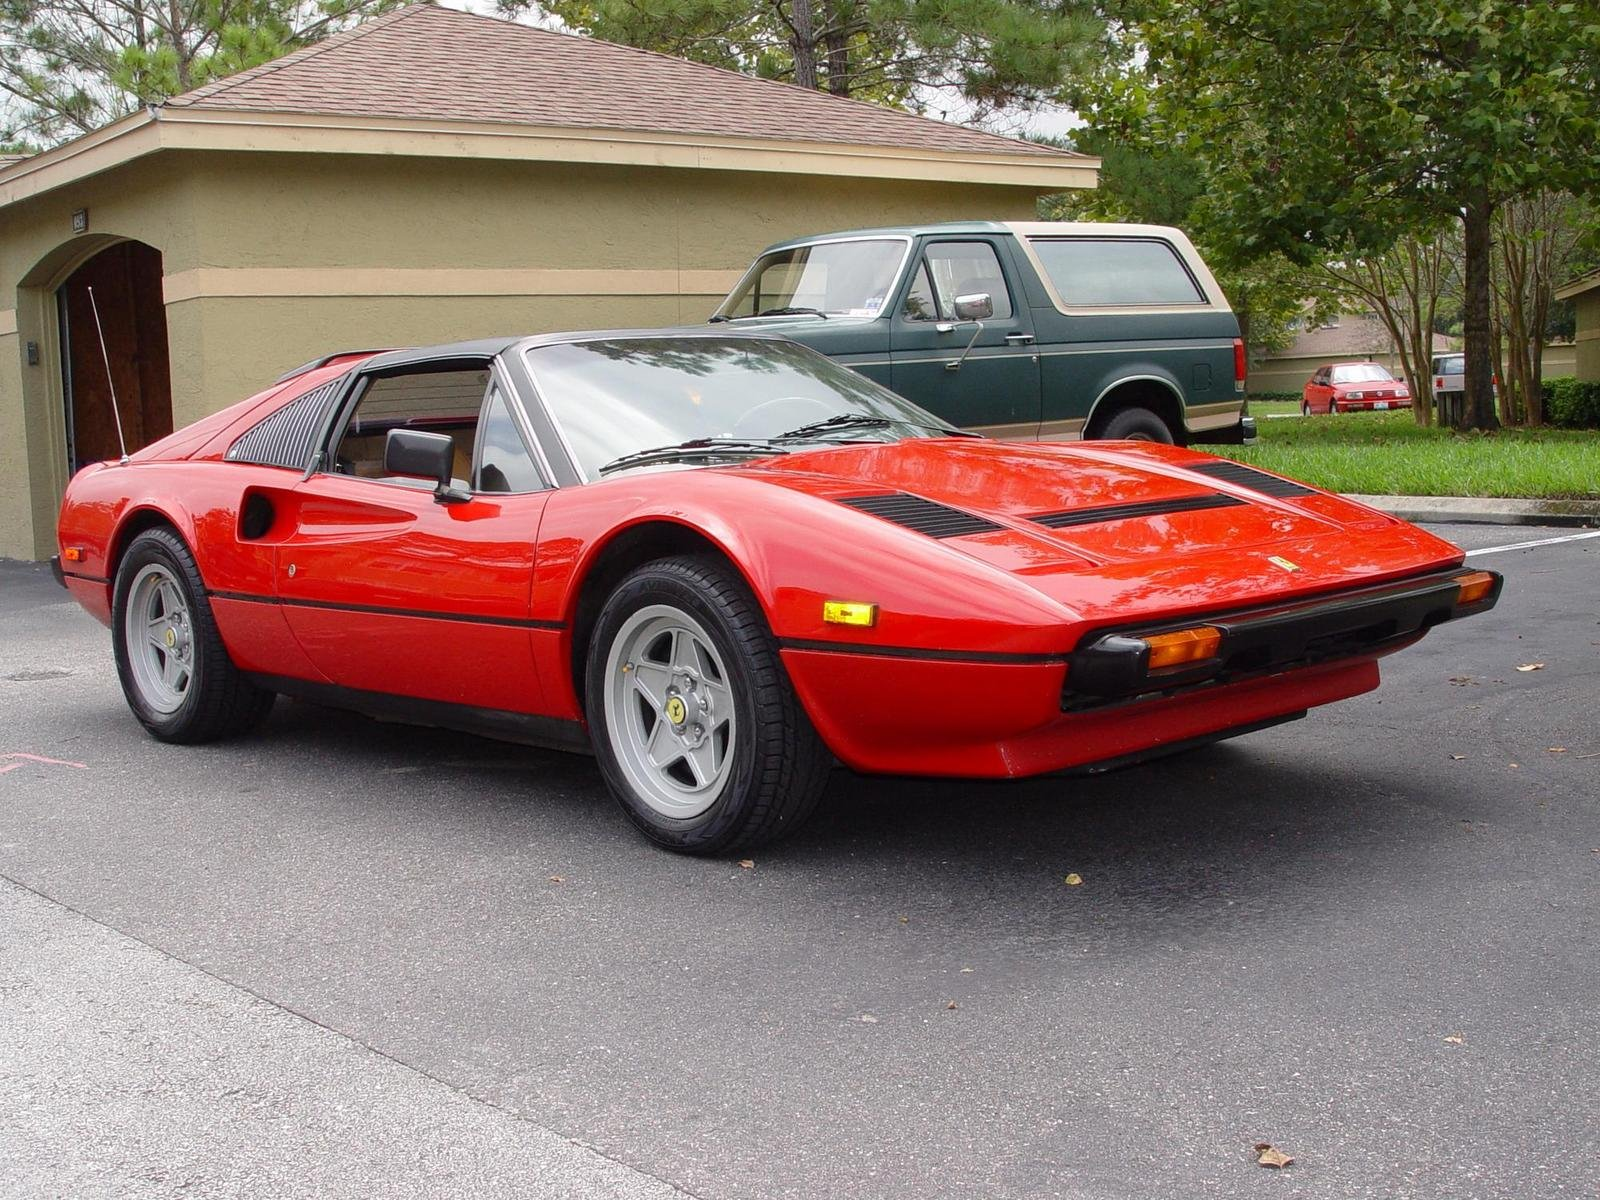 1980 1983 ferrari 308 gtsi picture 322713 car review top speed. Black Bedroom Furniture Sets. Home Design Ideas